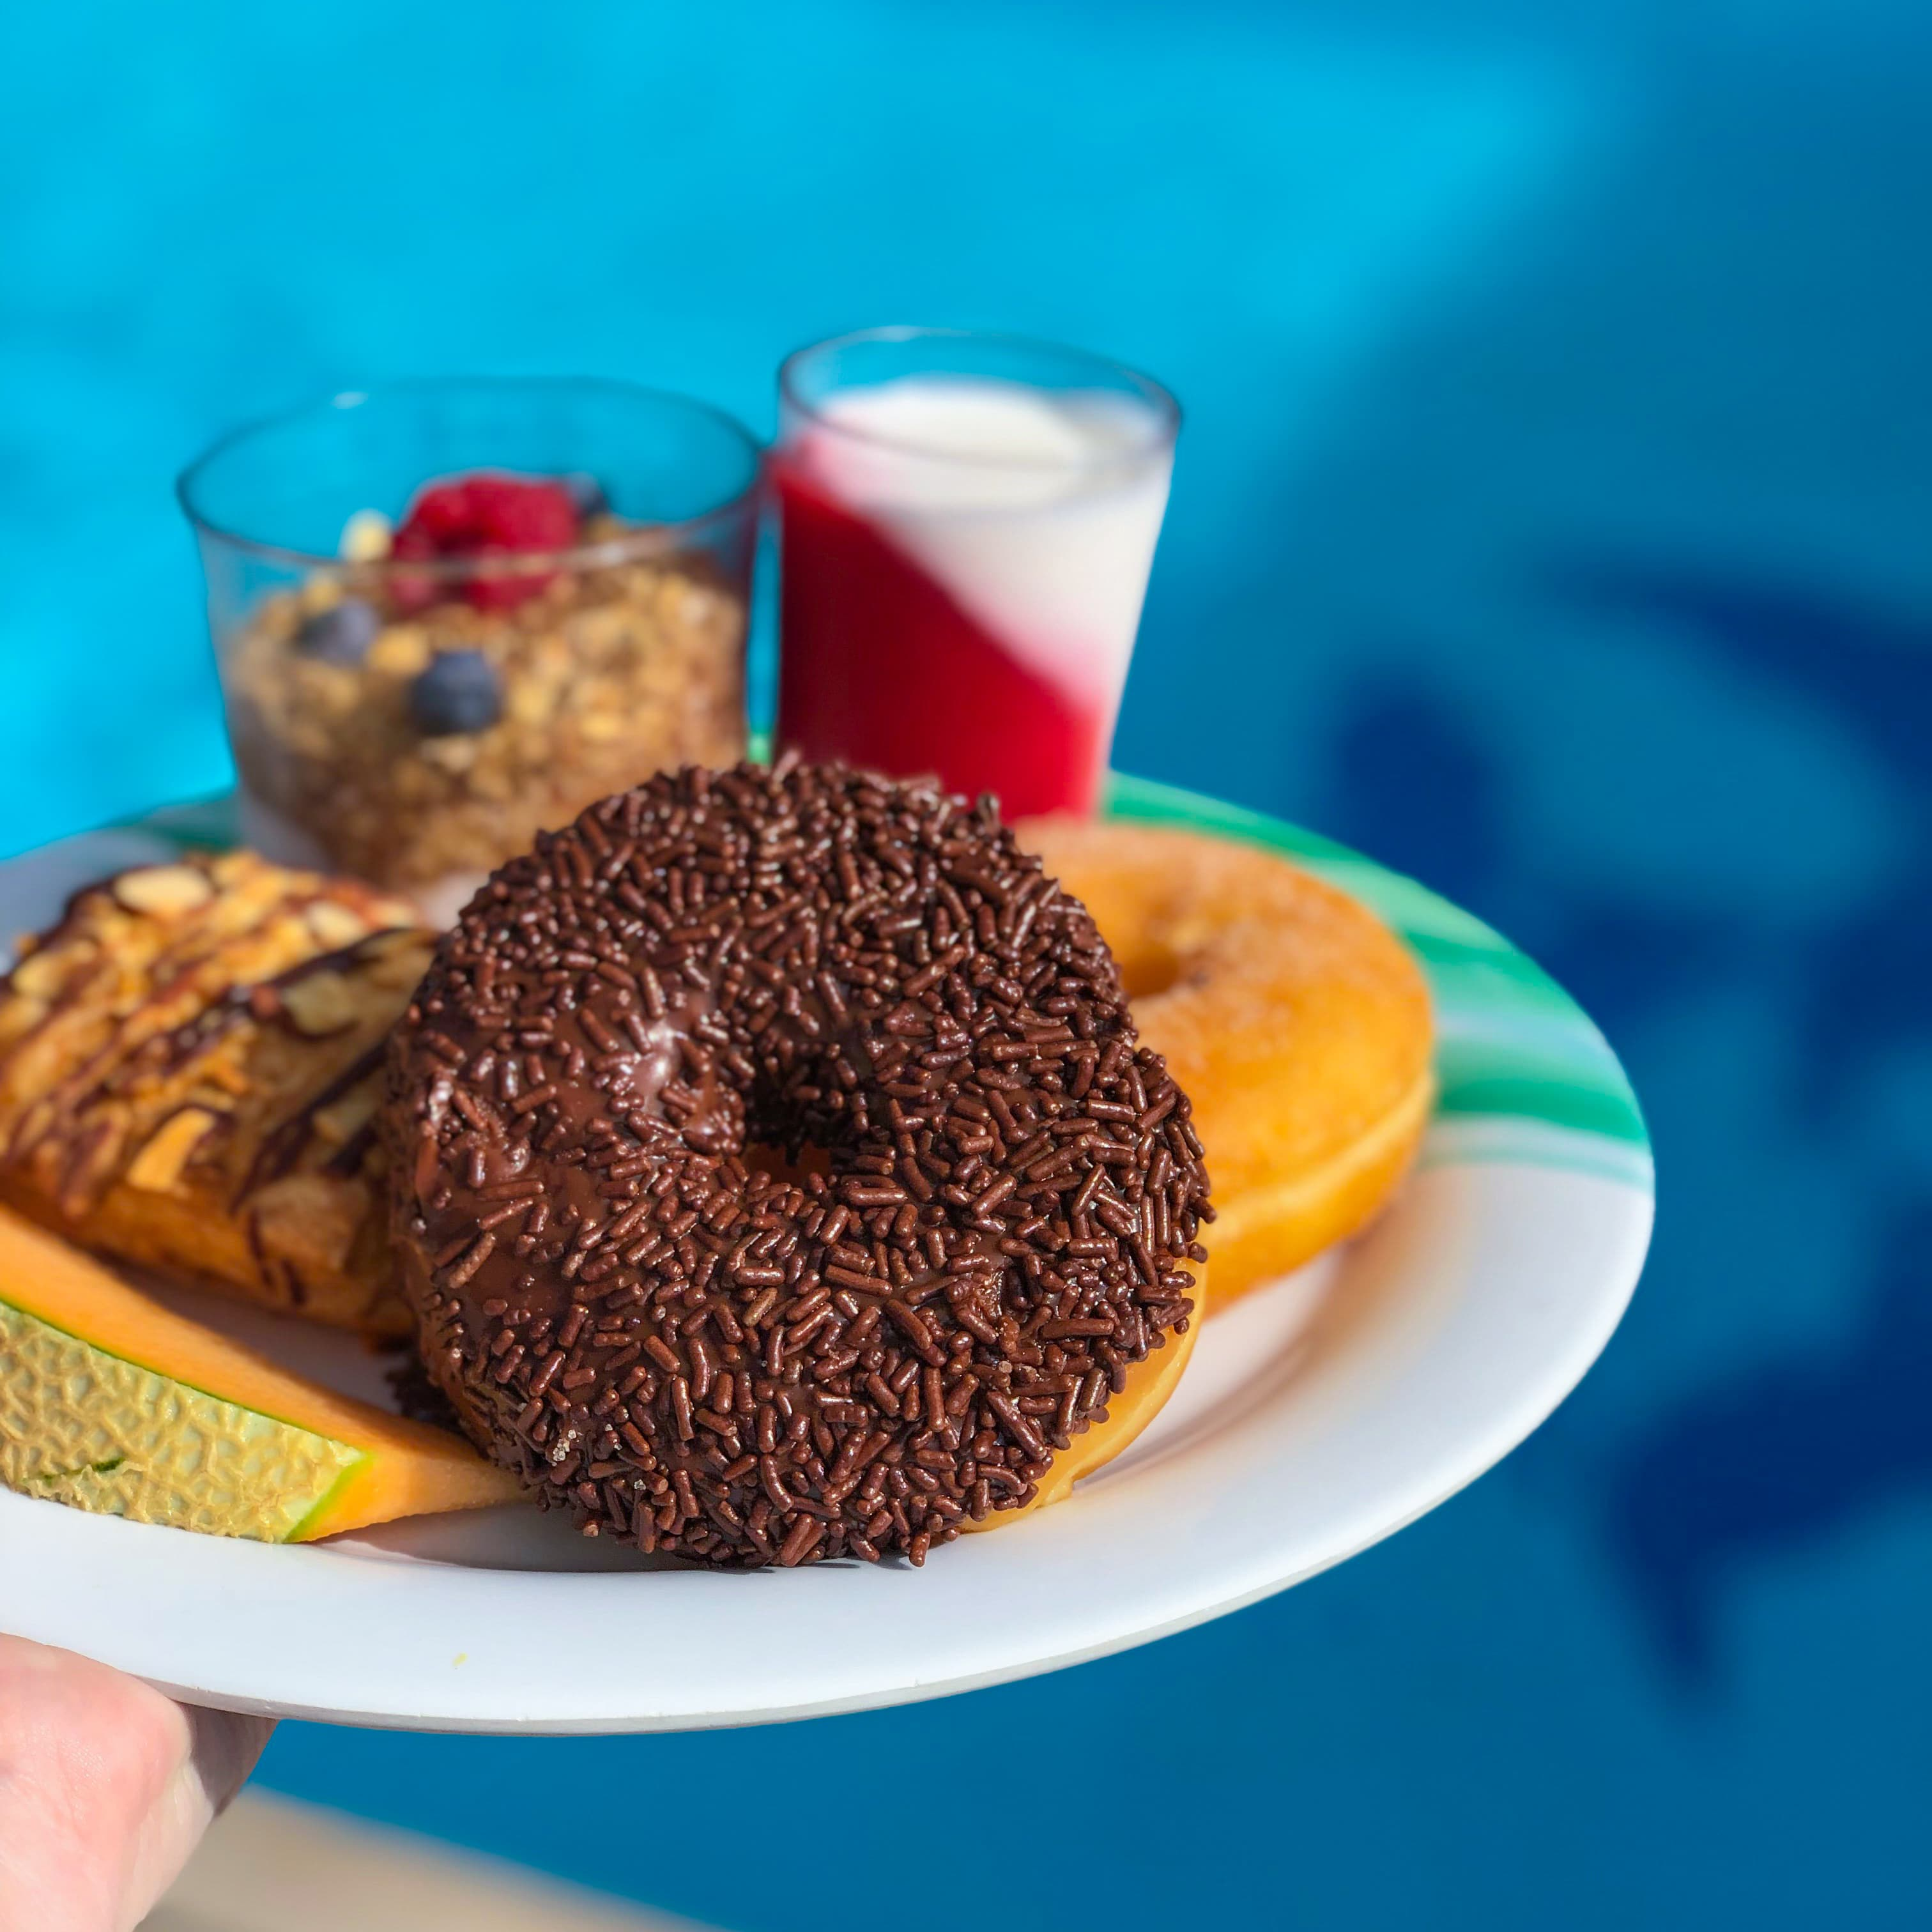 Plate with assorted breakfast items over a pool